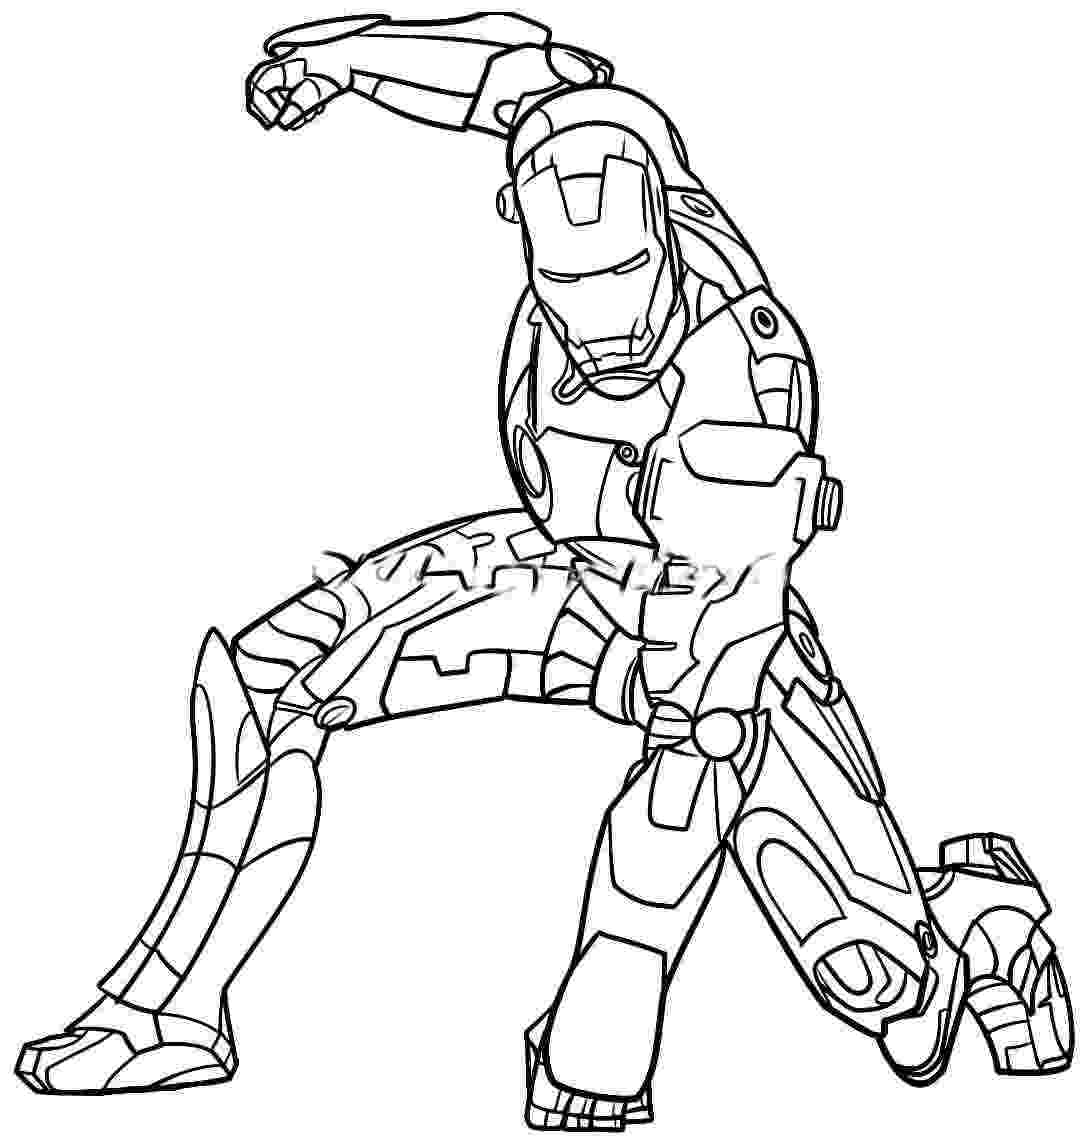 coloring pages superheroes superheroes coloring pages download and print for free pages superheroes coloring